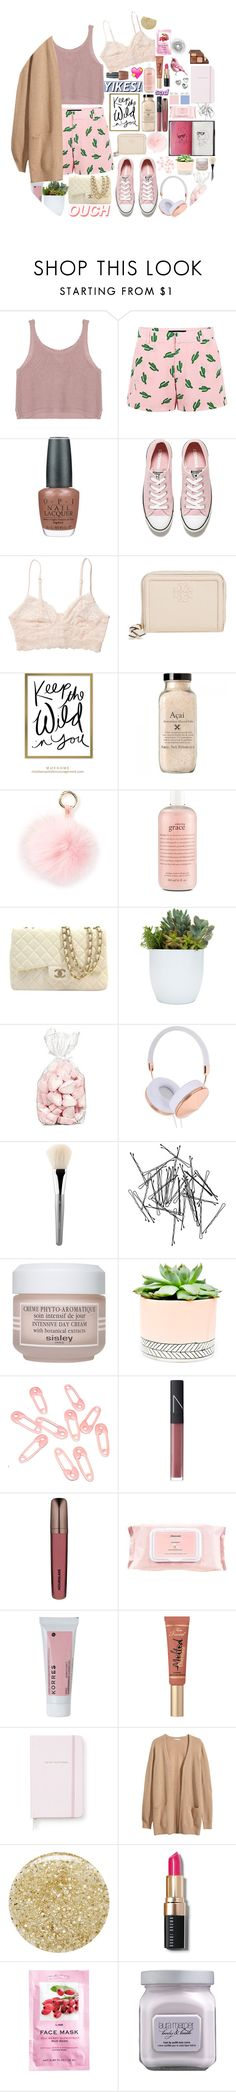 """the liquor on his lips"" by lanadelnotyou ❤ liked on Polyvore featuring moda, American Retro, OPI, Converse, Monki, Tory Burch, RAJ, philosophy, Chanel ve Frends"